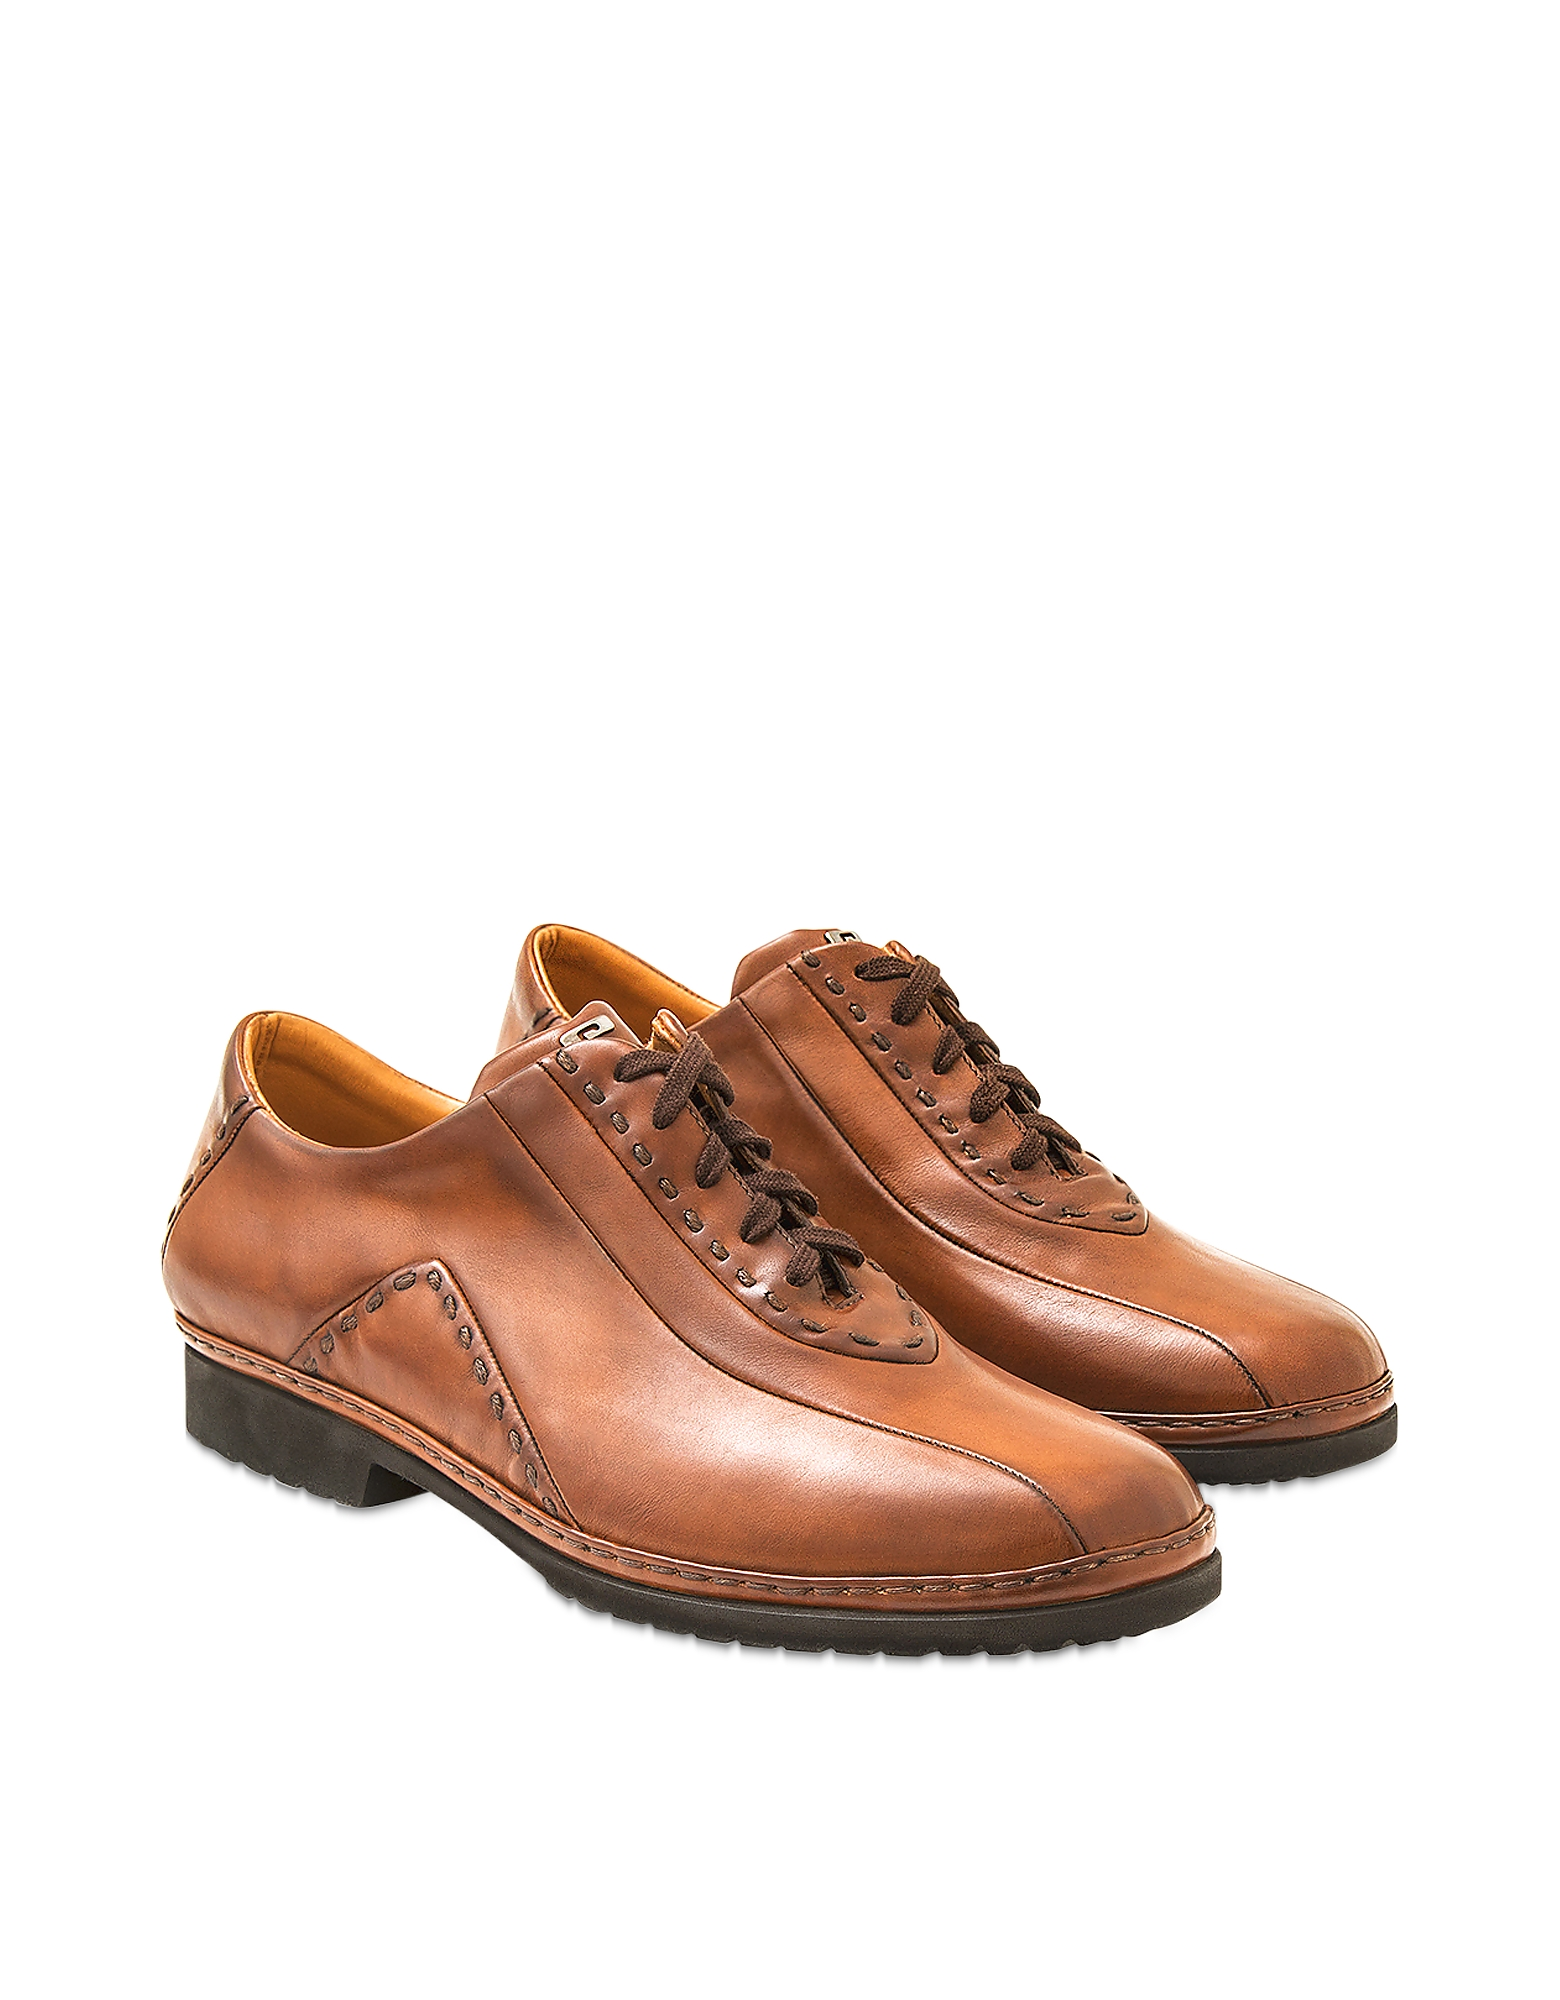 Tan Italian Hand Made Calf Leather Lace-up Shoes